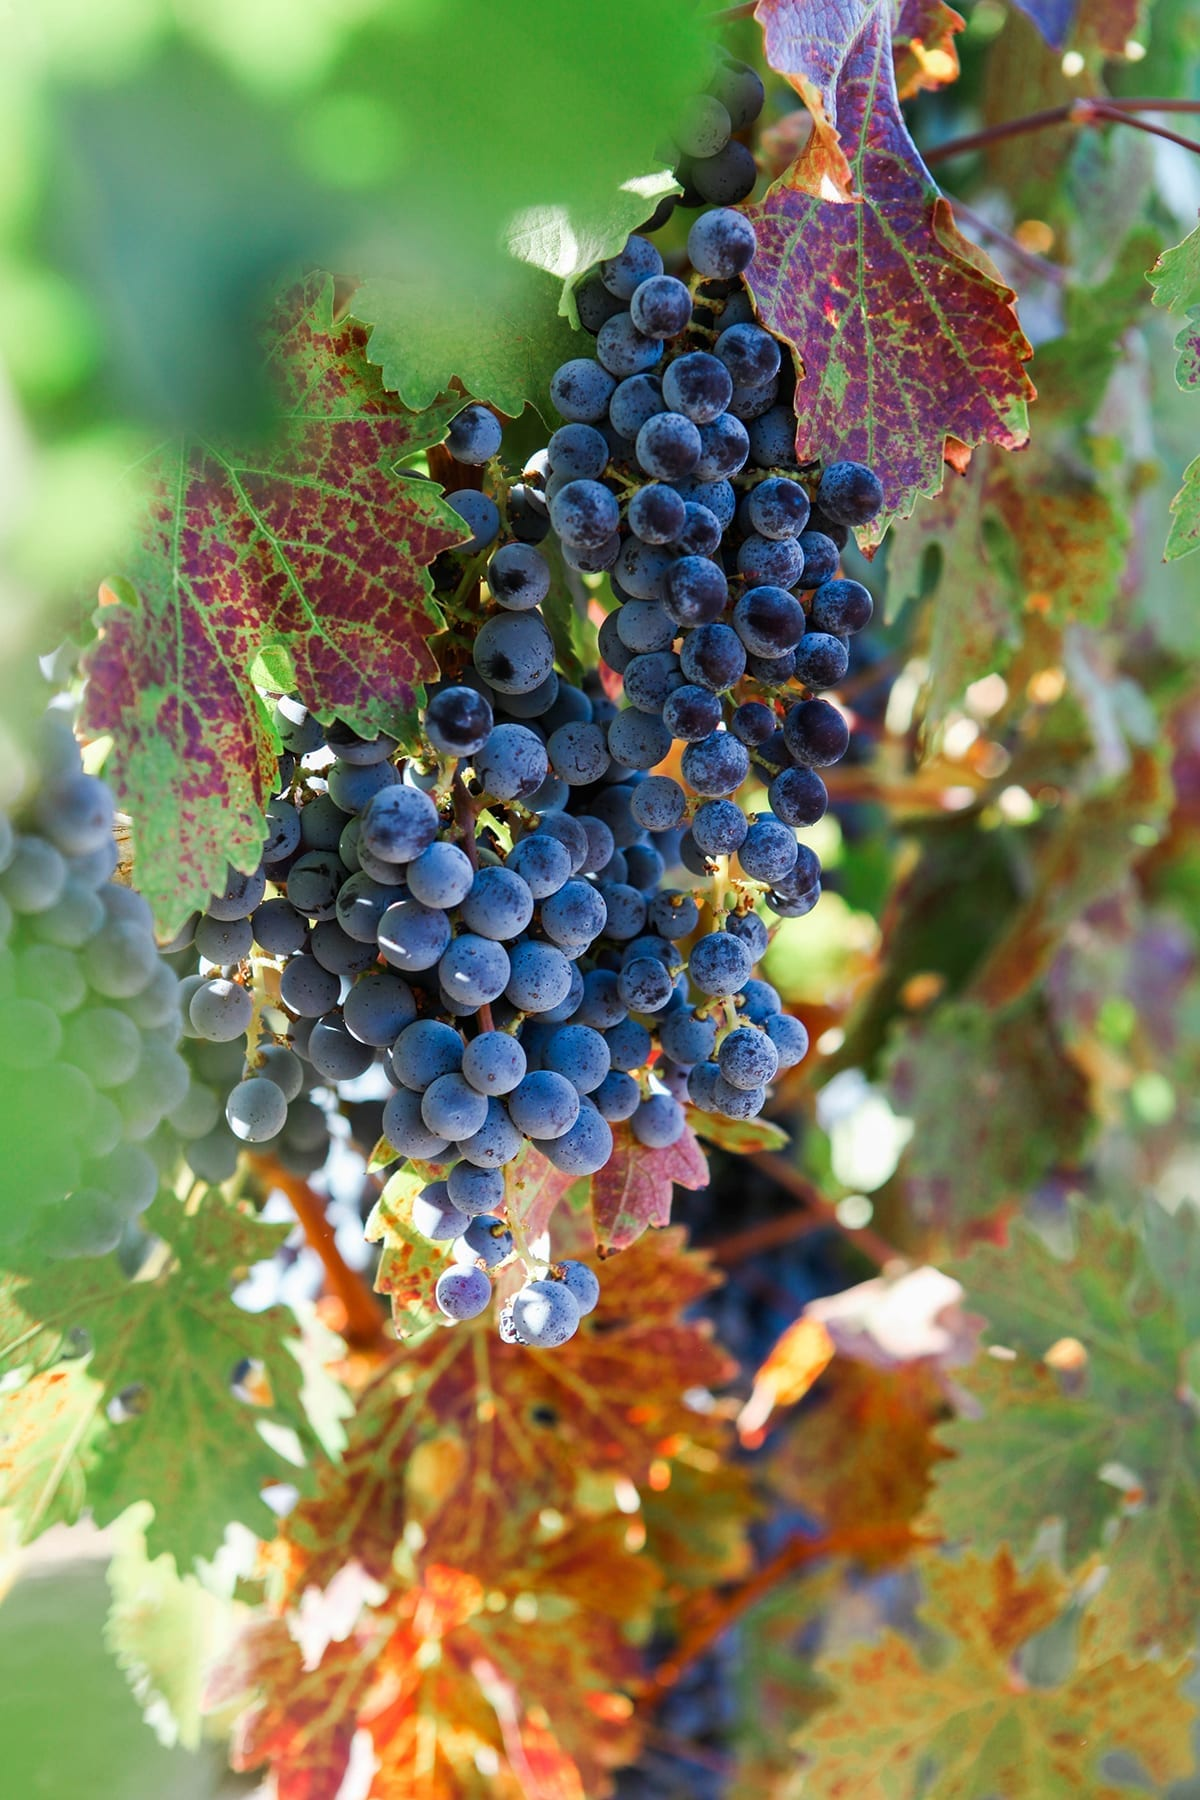 A bunch of wine grapes on a vine